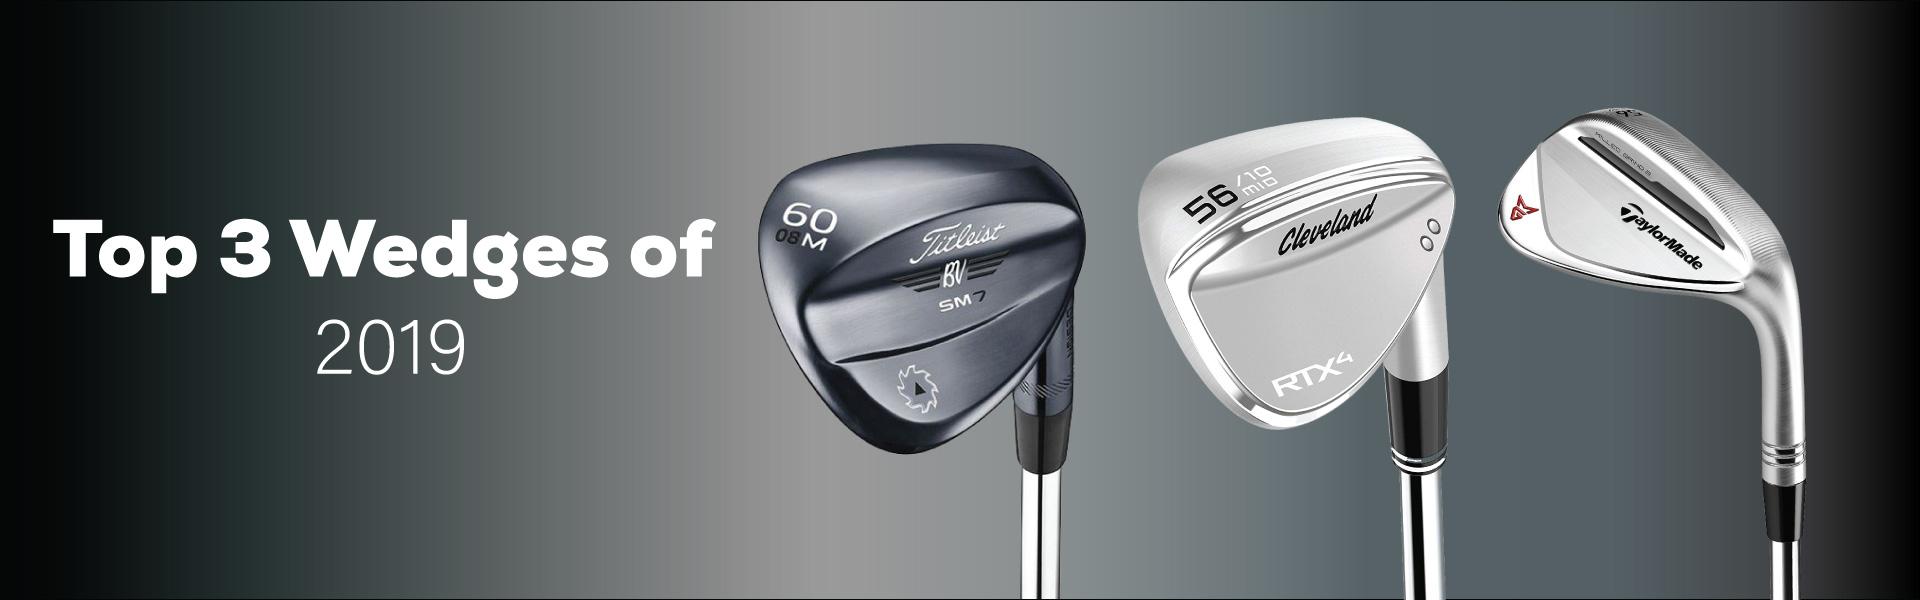 Top 3 Wedges of 2019